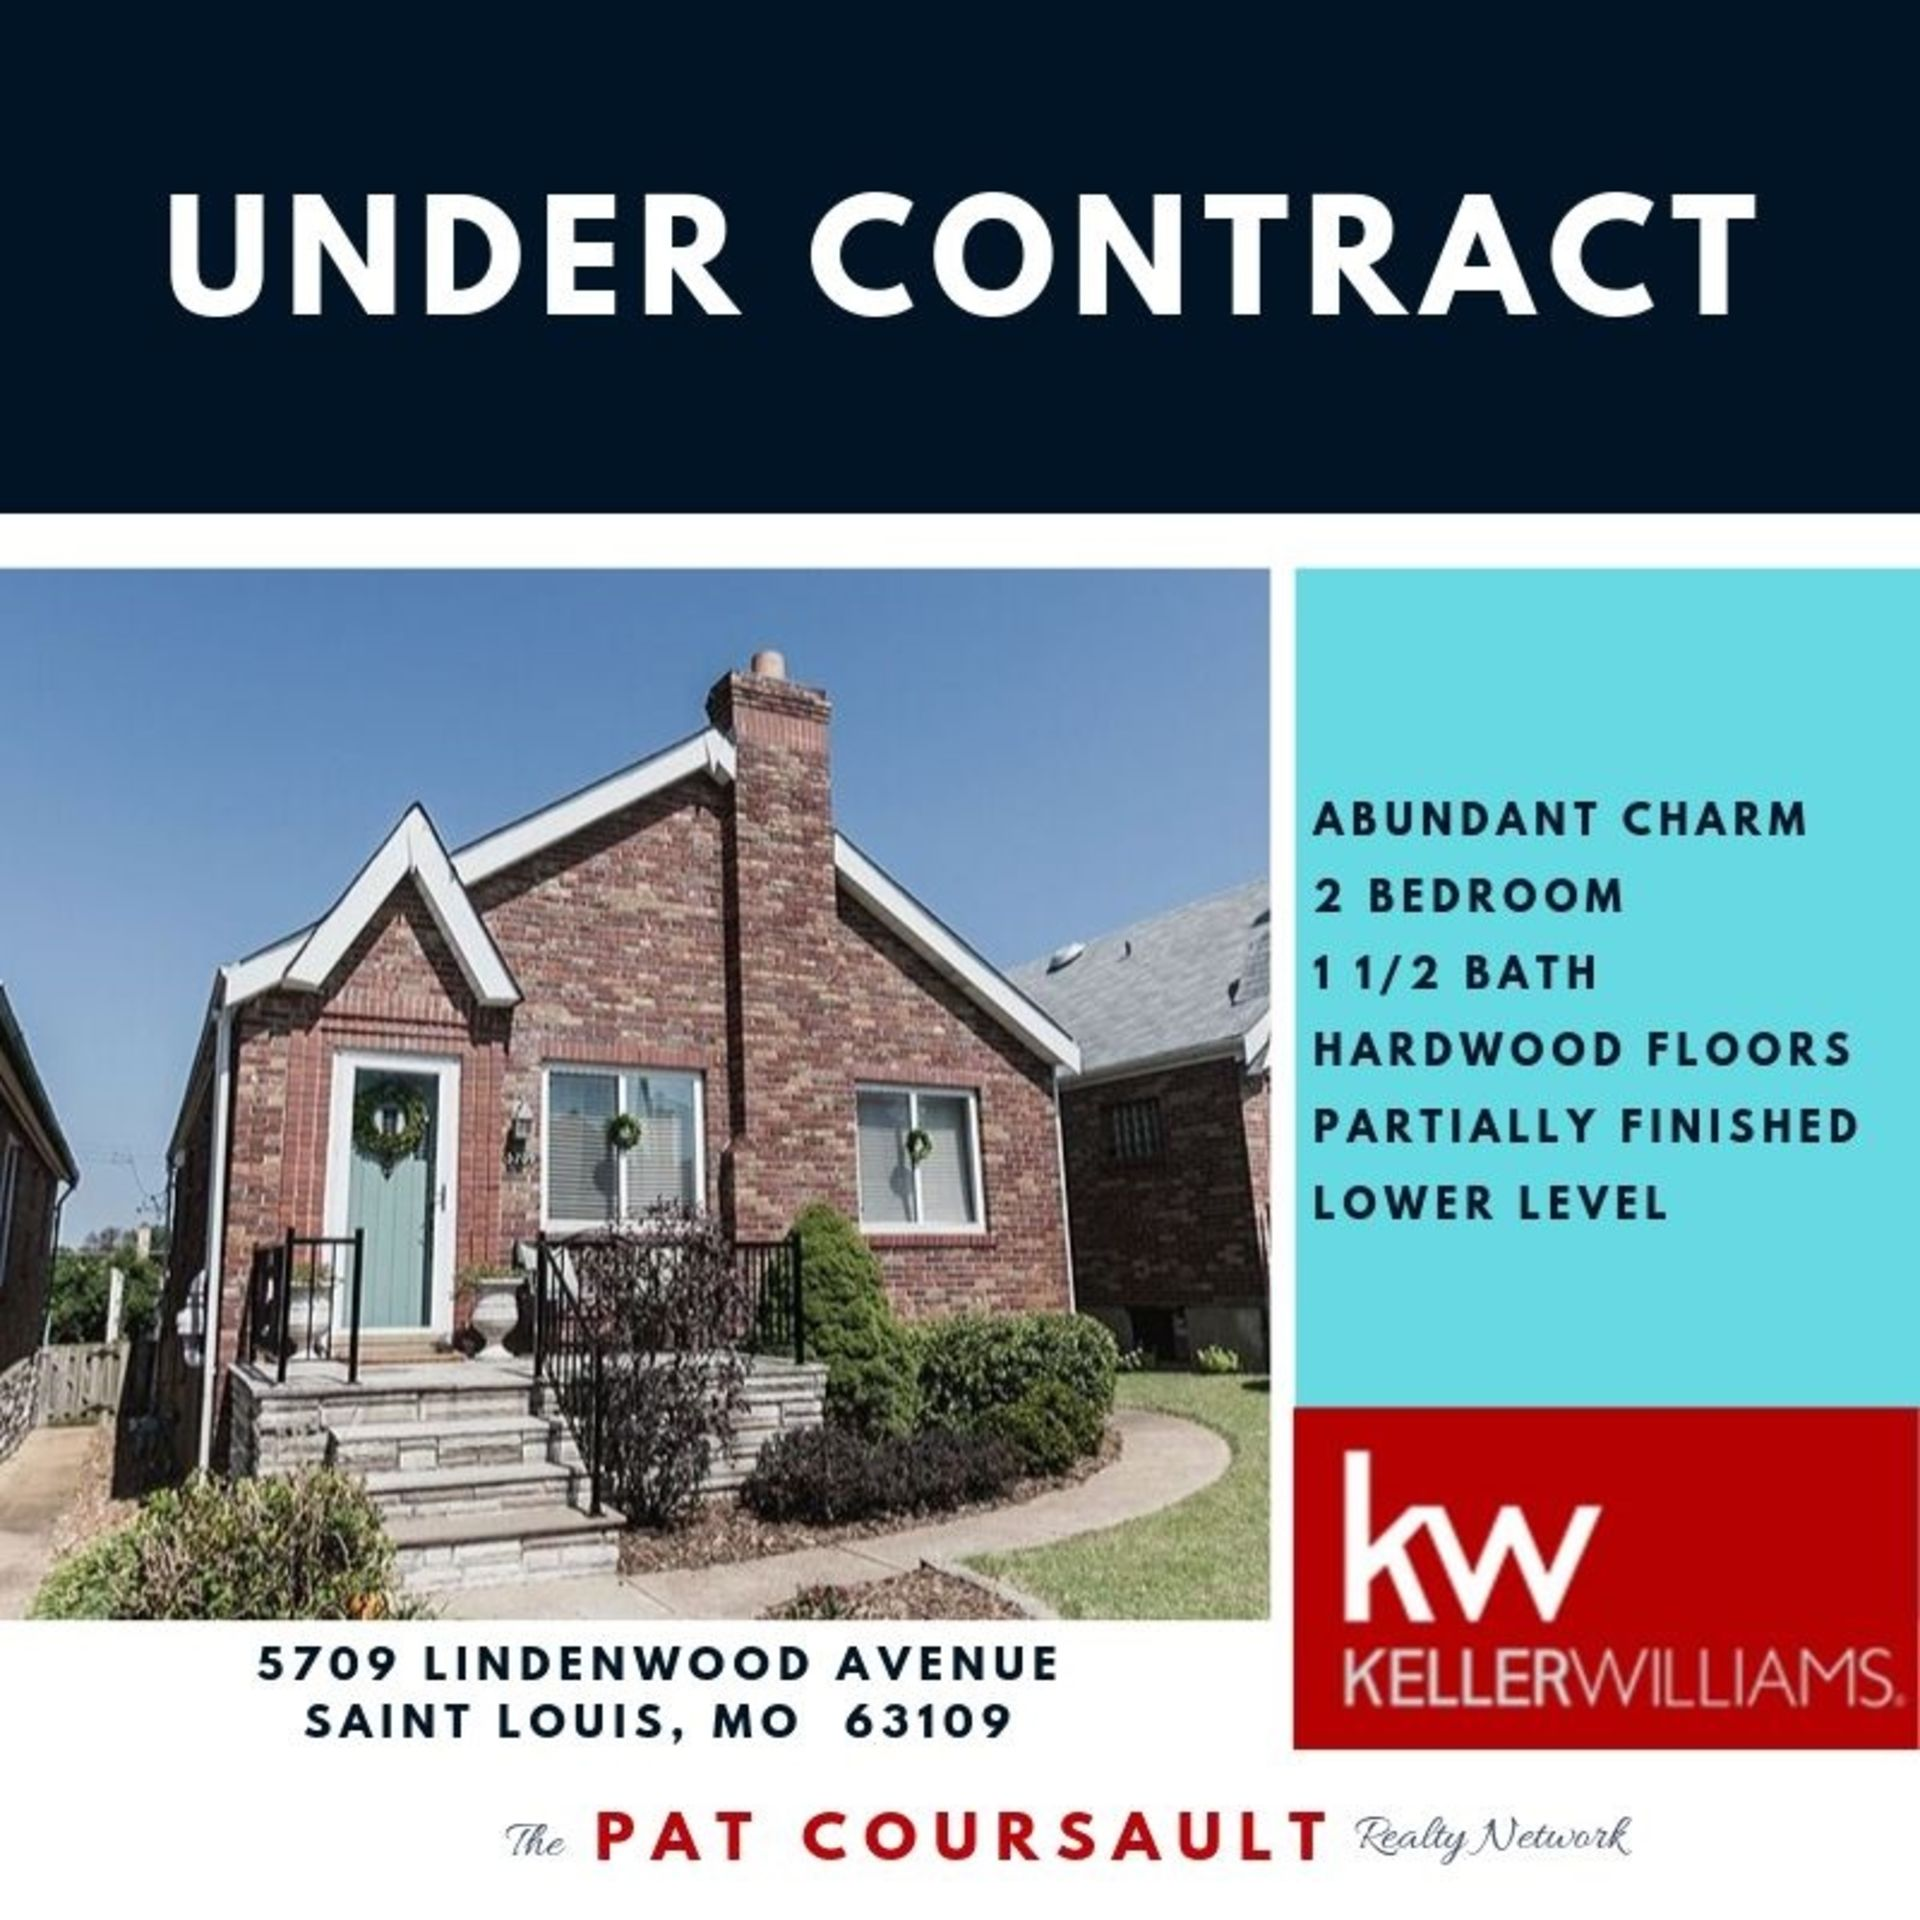 UNDER CONTRACT…5709 Lindenwood Avenue, 63109